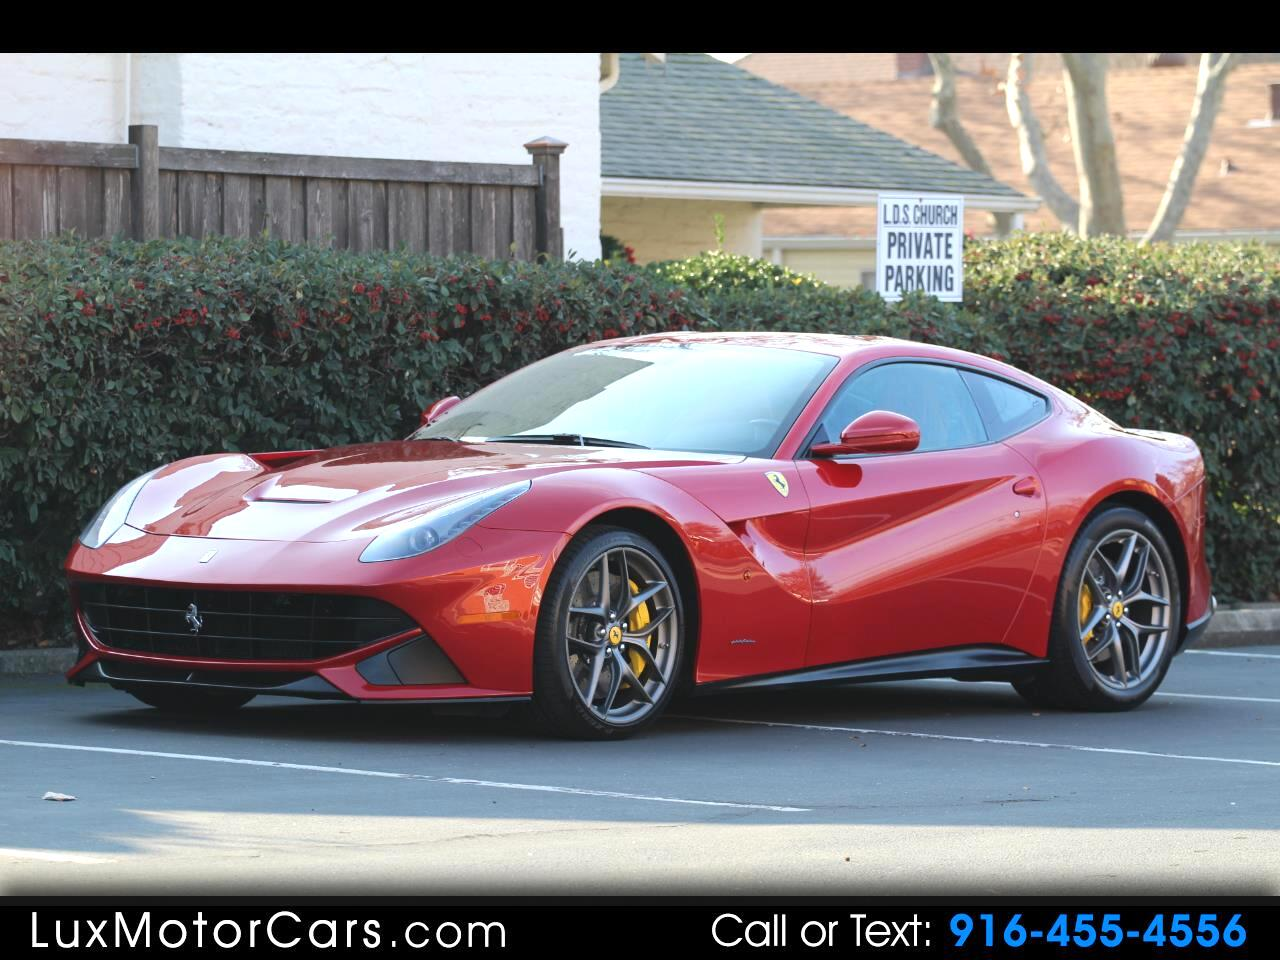 2015 Ferrari F12 Berlinetta Coupe